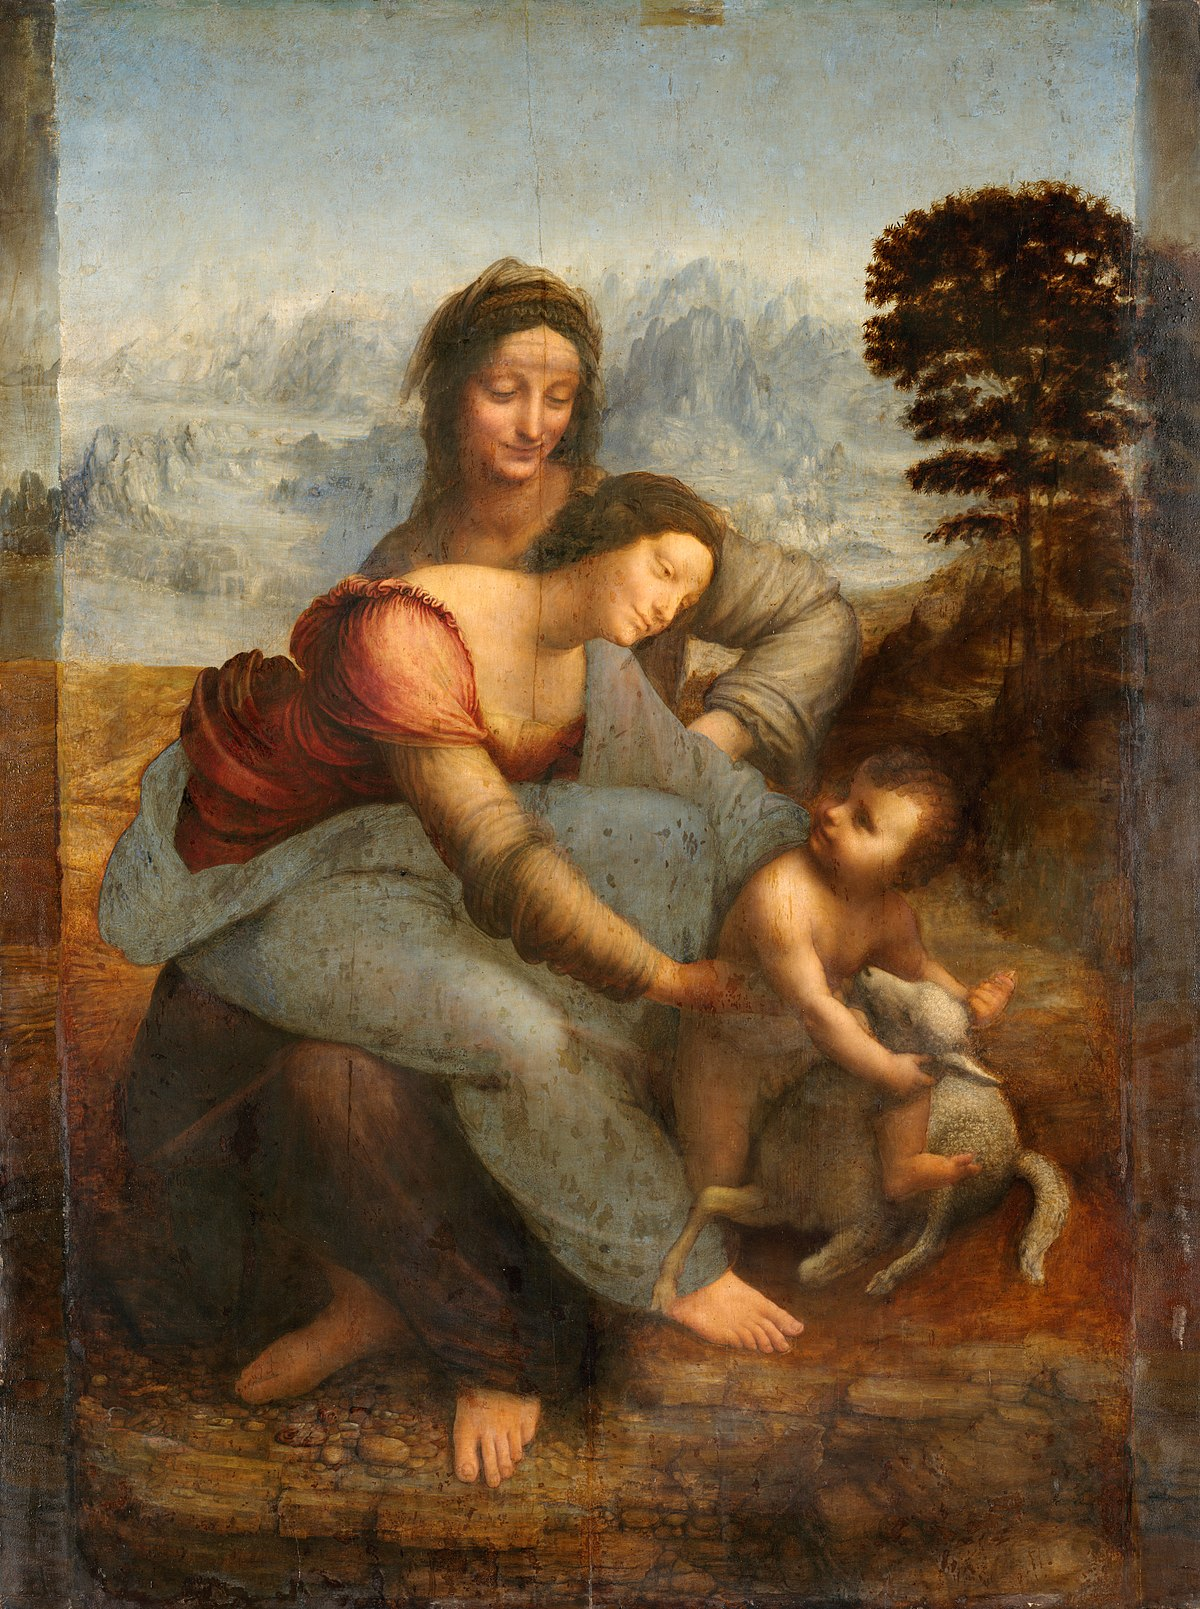 Leonardo da Vinci - Virgin and Child with St Anne C2RMF retouched.jpg